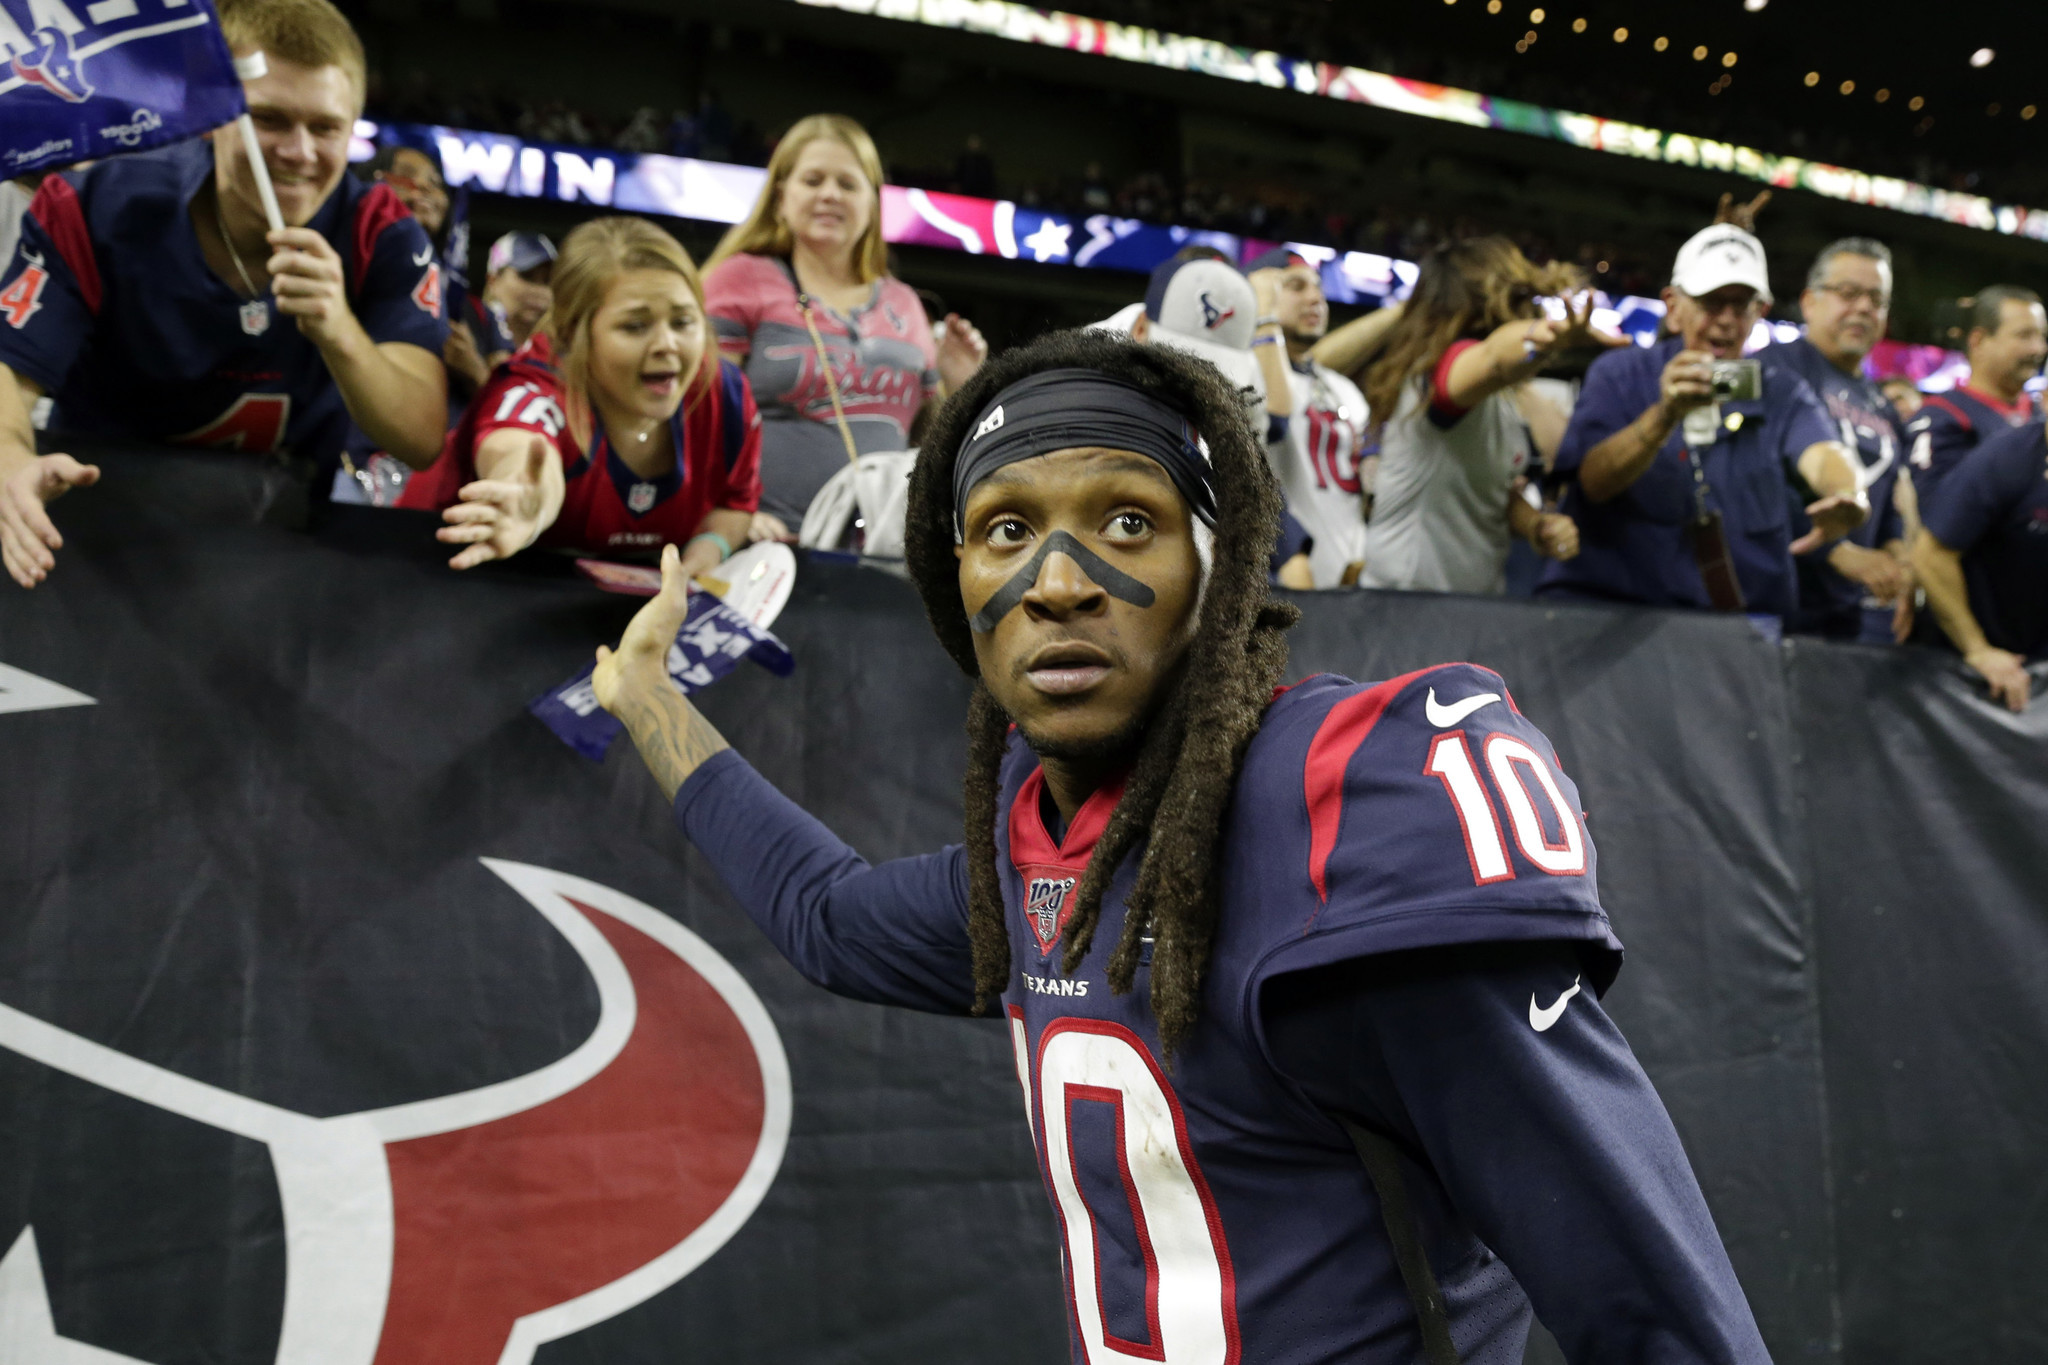 Bill O'Brien compared DeAndre Hopkins to Aaron Hernandez, Michael Irvin claims on ESPN